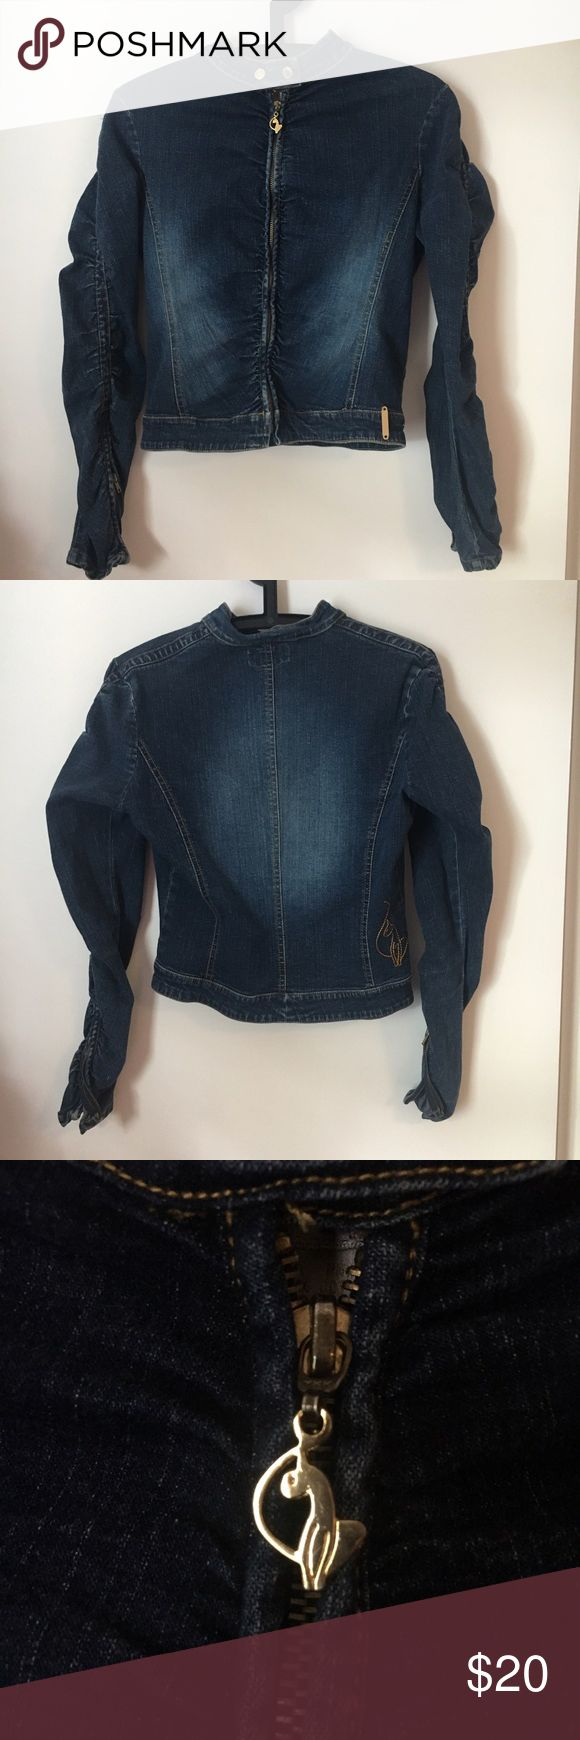 Women's Baby Phat Denim Outfit Zip-Up Size S Baby Phat size small. Jackets & Coats